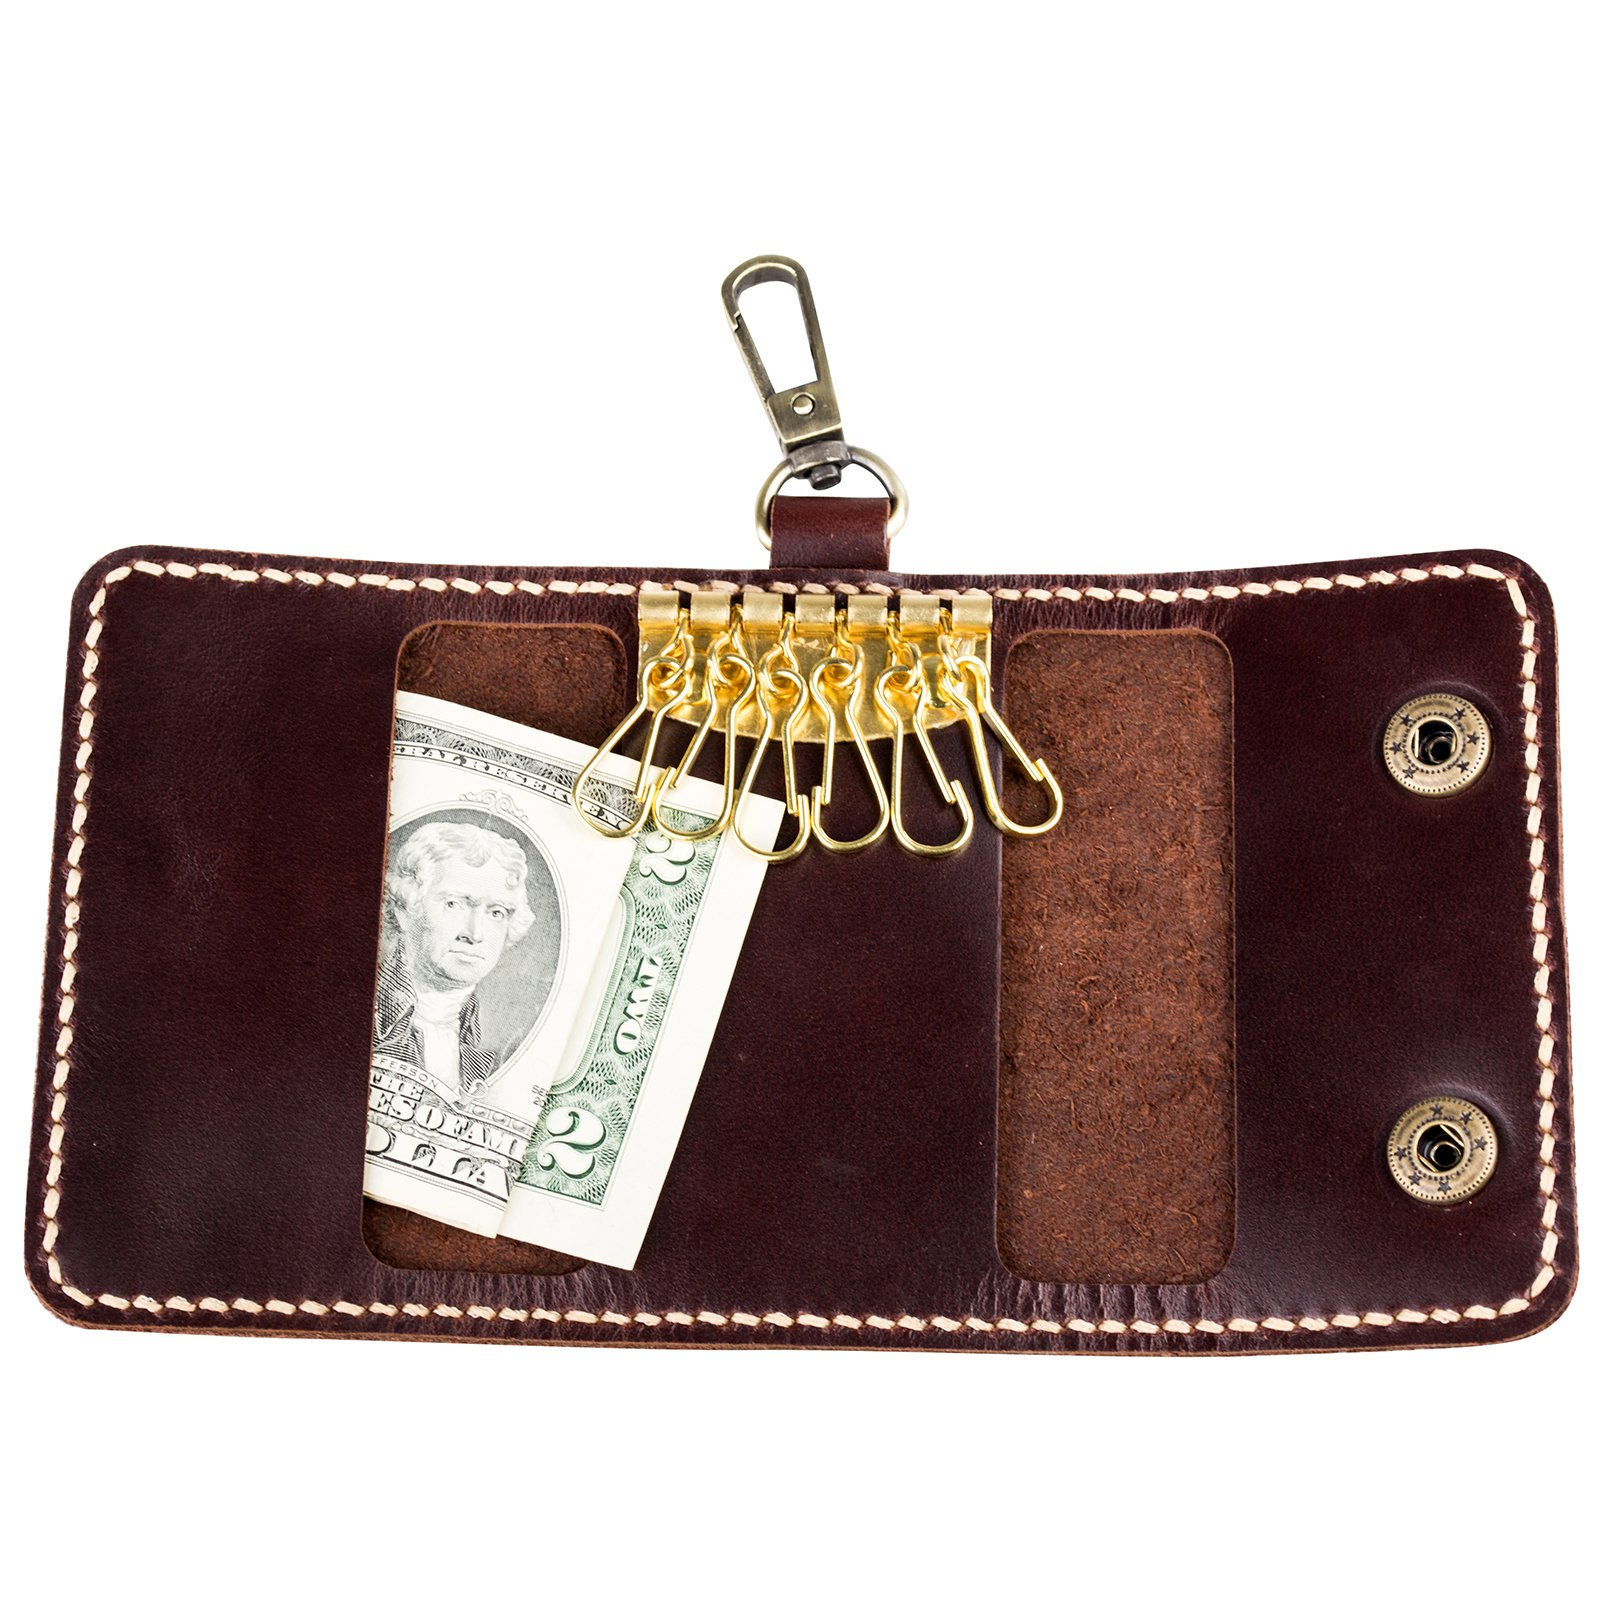 Ancicraft Key Case Holder Leather Handmade Bag Card Wallet by Handcrafted Gift (Dark coffee & clasp)